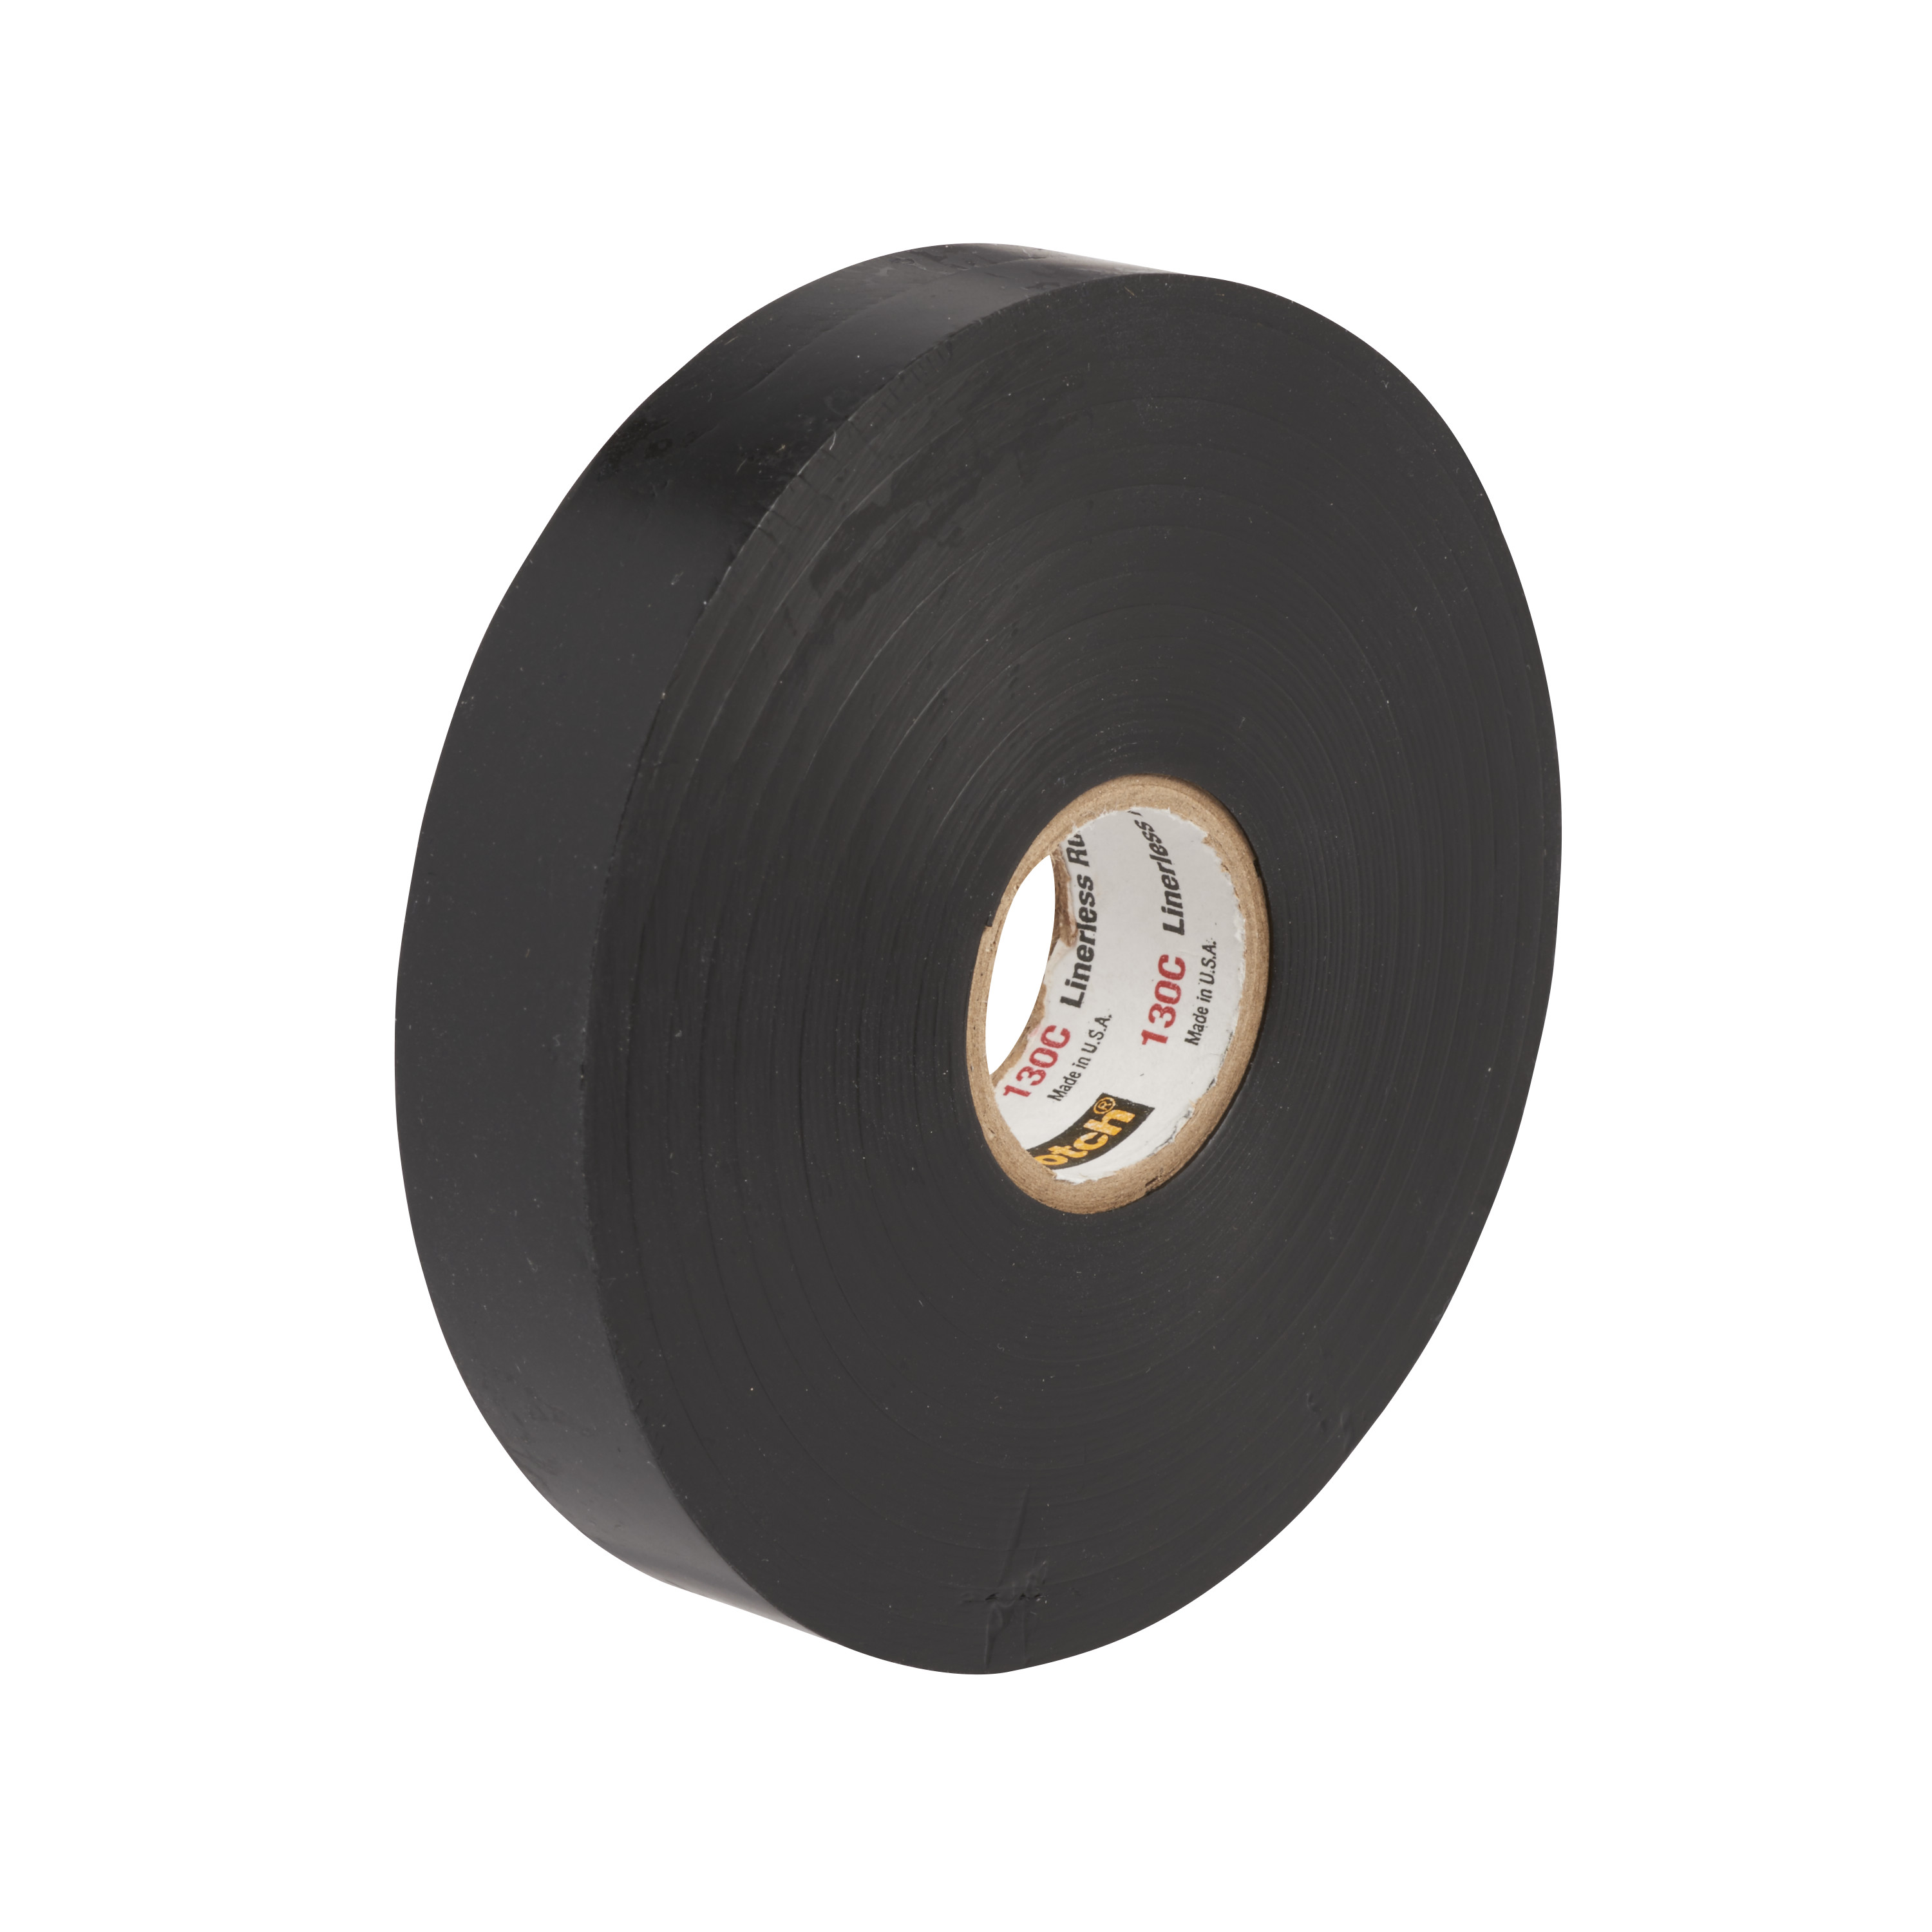 3M™ 130C-3/4x30FT Linerless Premium-Grade Splicing Tape, 30 ft L x 3/4 in W, 30 mil THK, Rubber, Rubber Resin Adhesive, Rubber Backing, Black